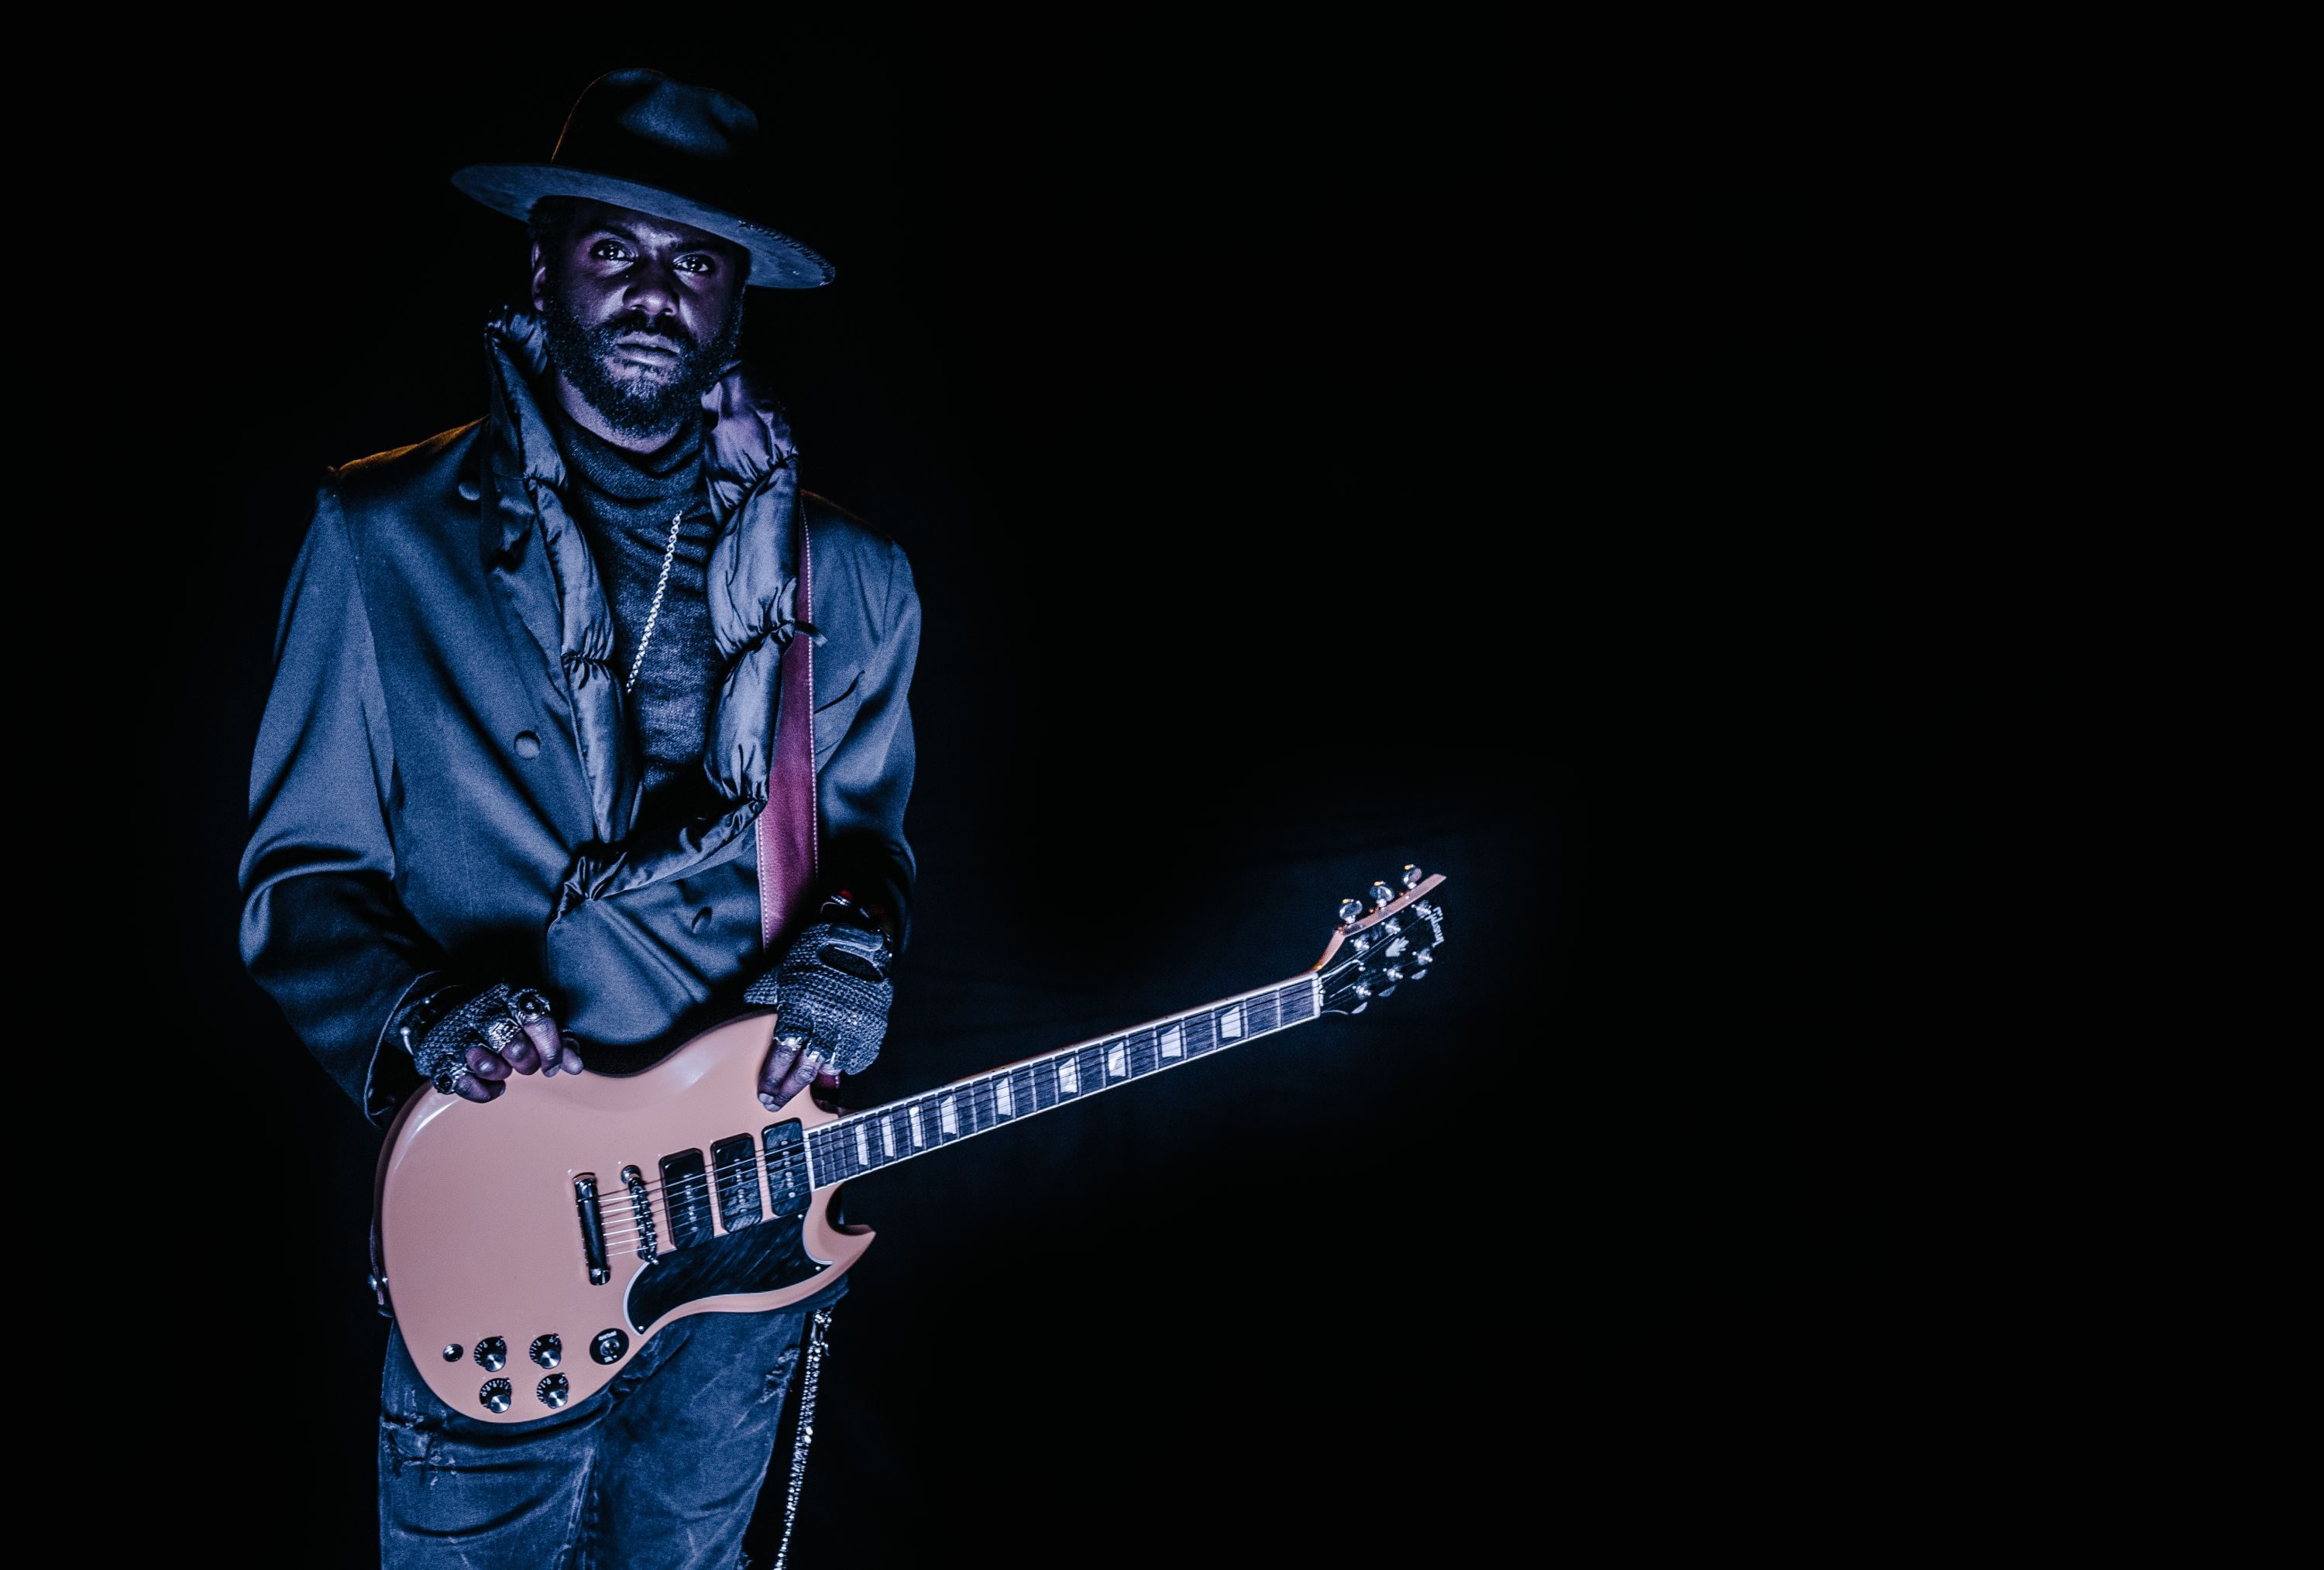 WEBCAST: Watch Gary Clark Jr. Live at Village Studios in Los Angeles for Front and Center